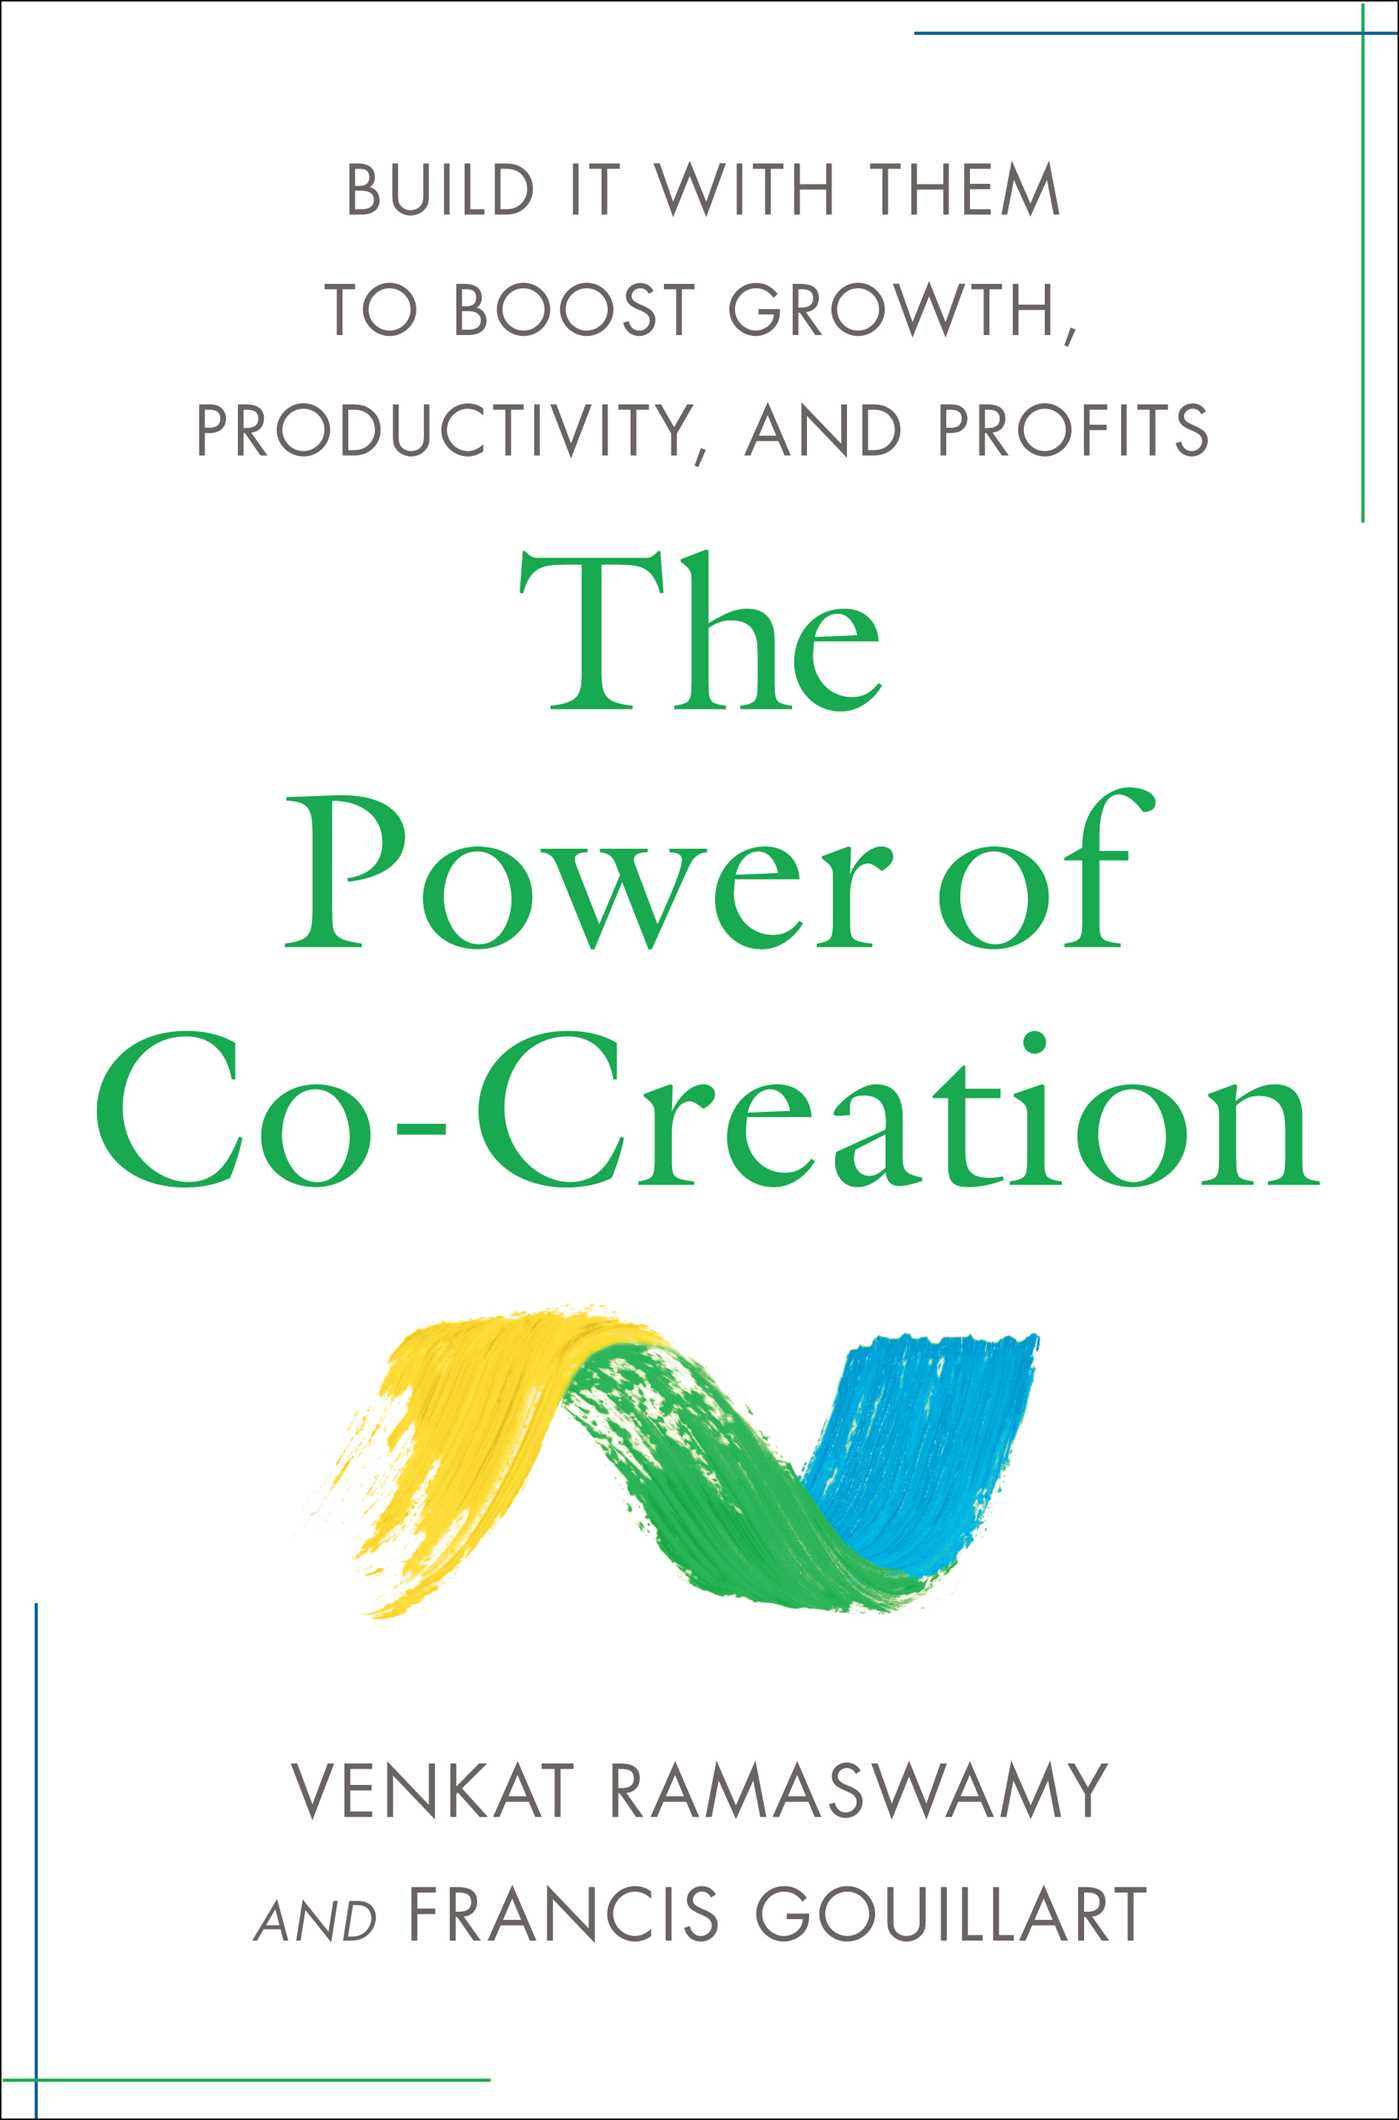 Download Ebook The Power of Co-Creation by Venkat Ramaswamy Pdf